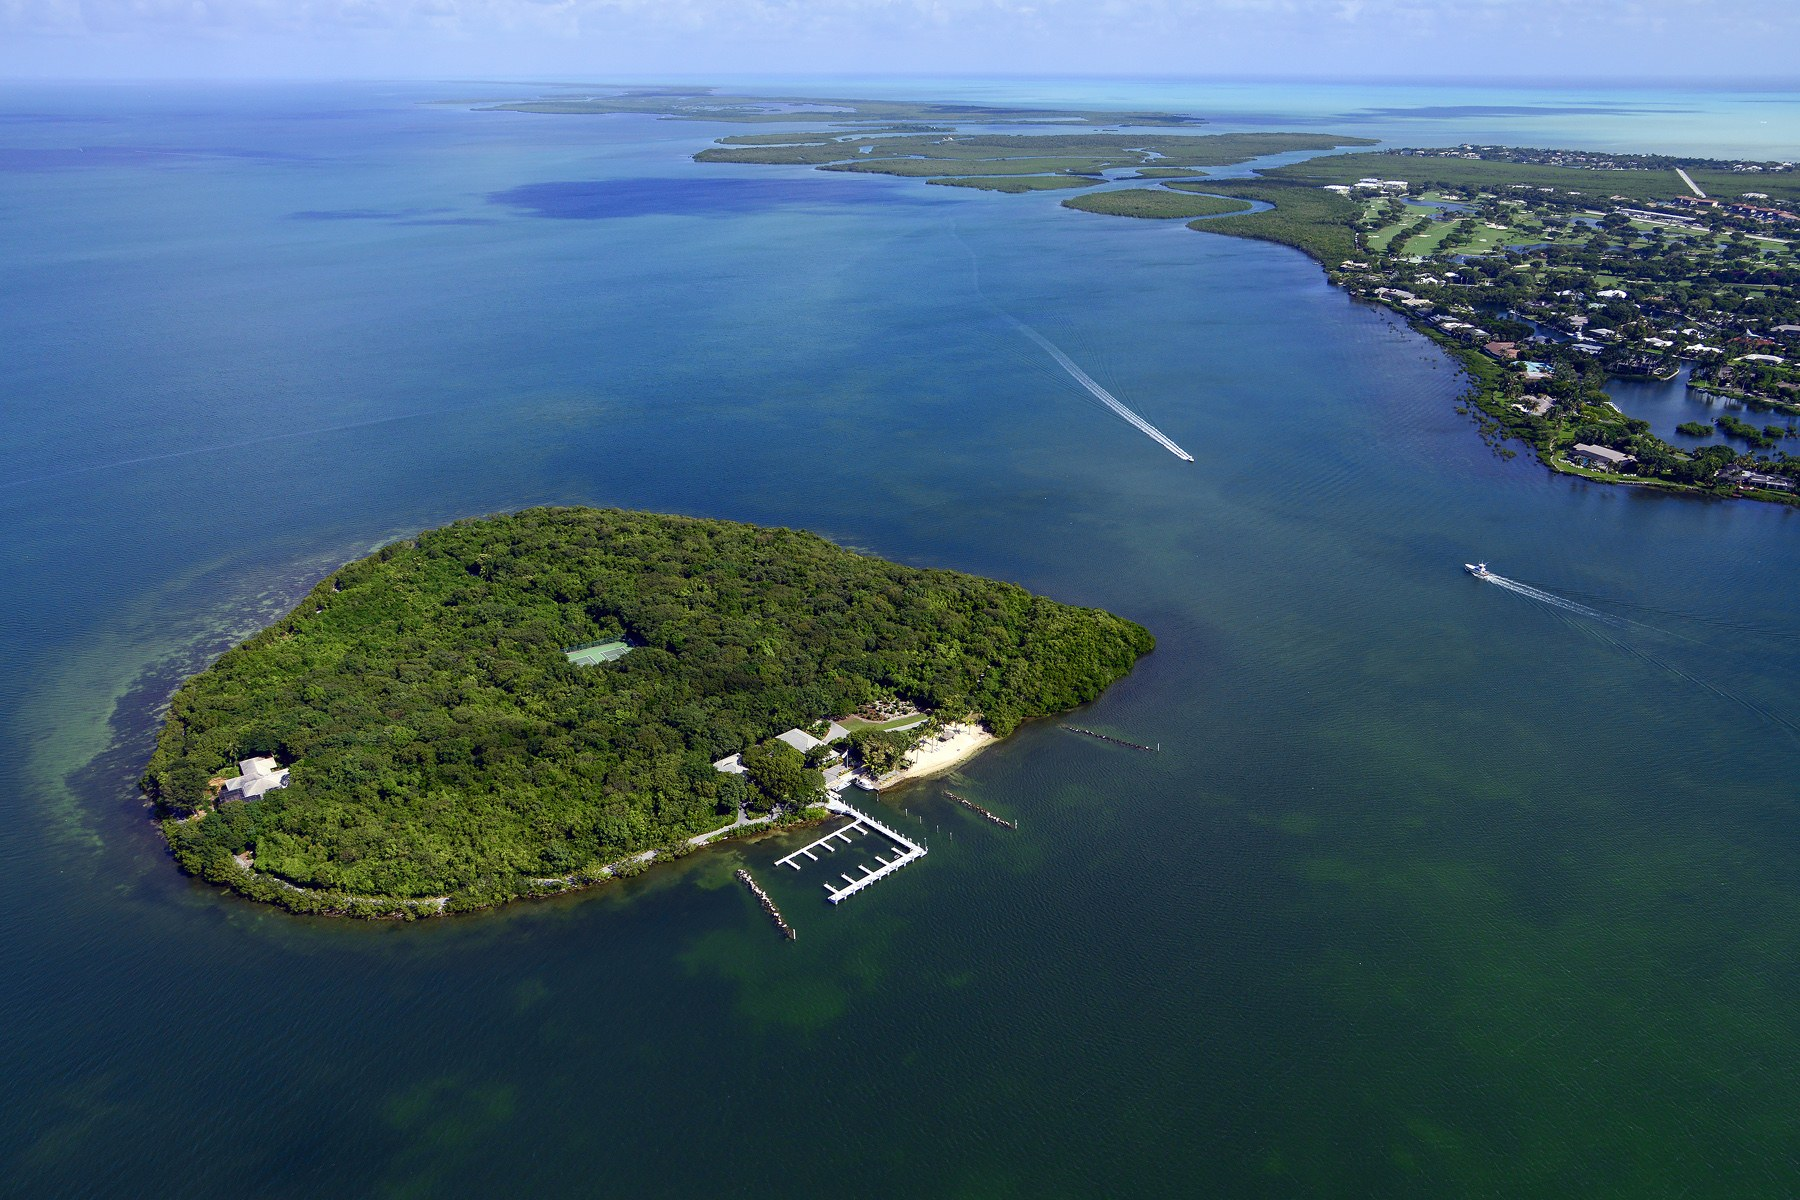 for Sale at Pumpkin Key - Private Island, Key Largo, FL Key Largo, Florida 33037 United States